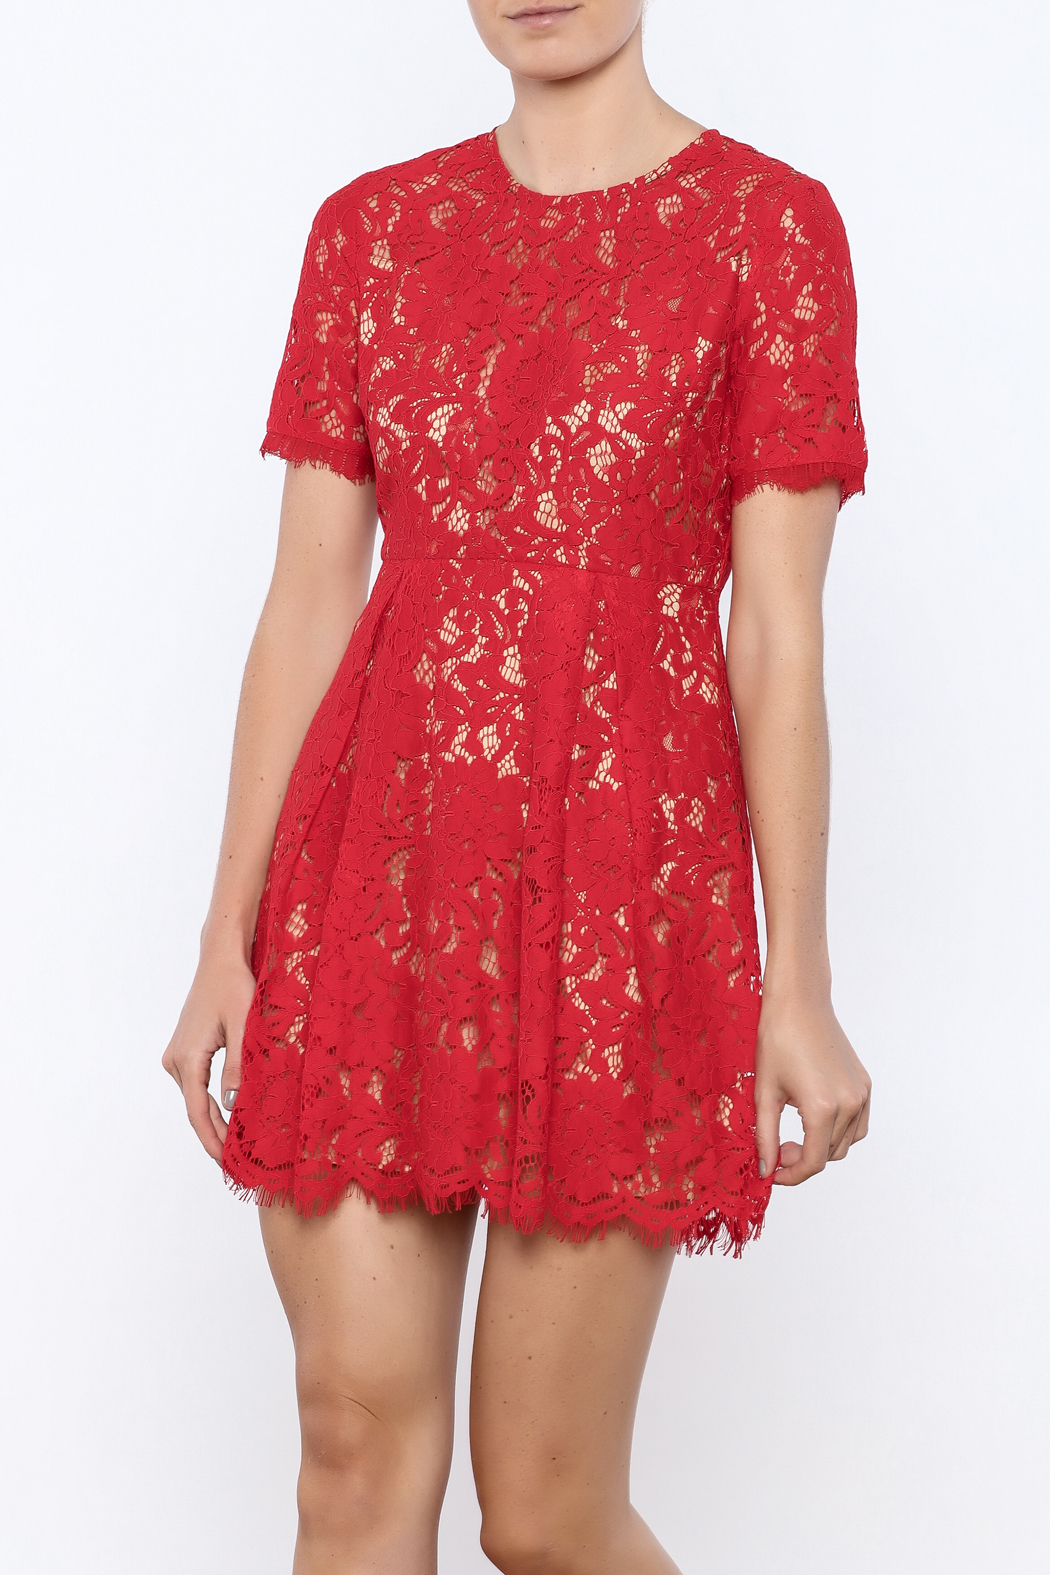 Lush Cherry Lace Dress - Main Image